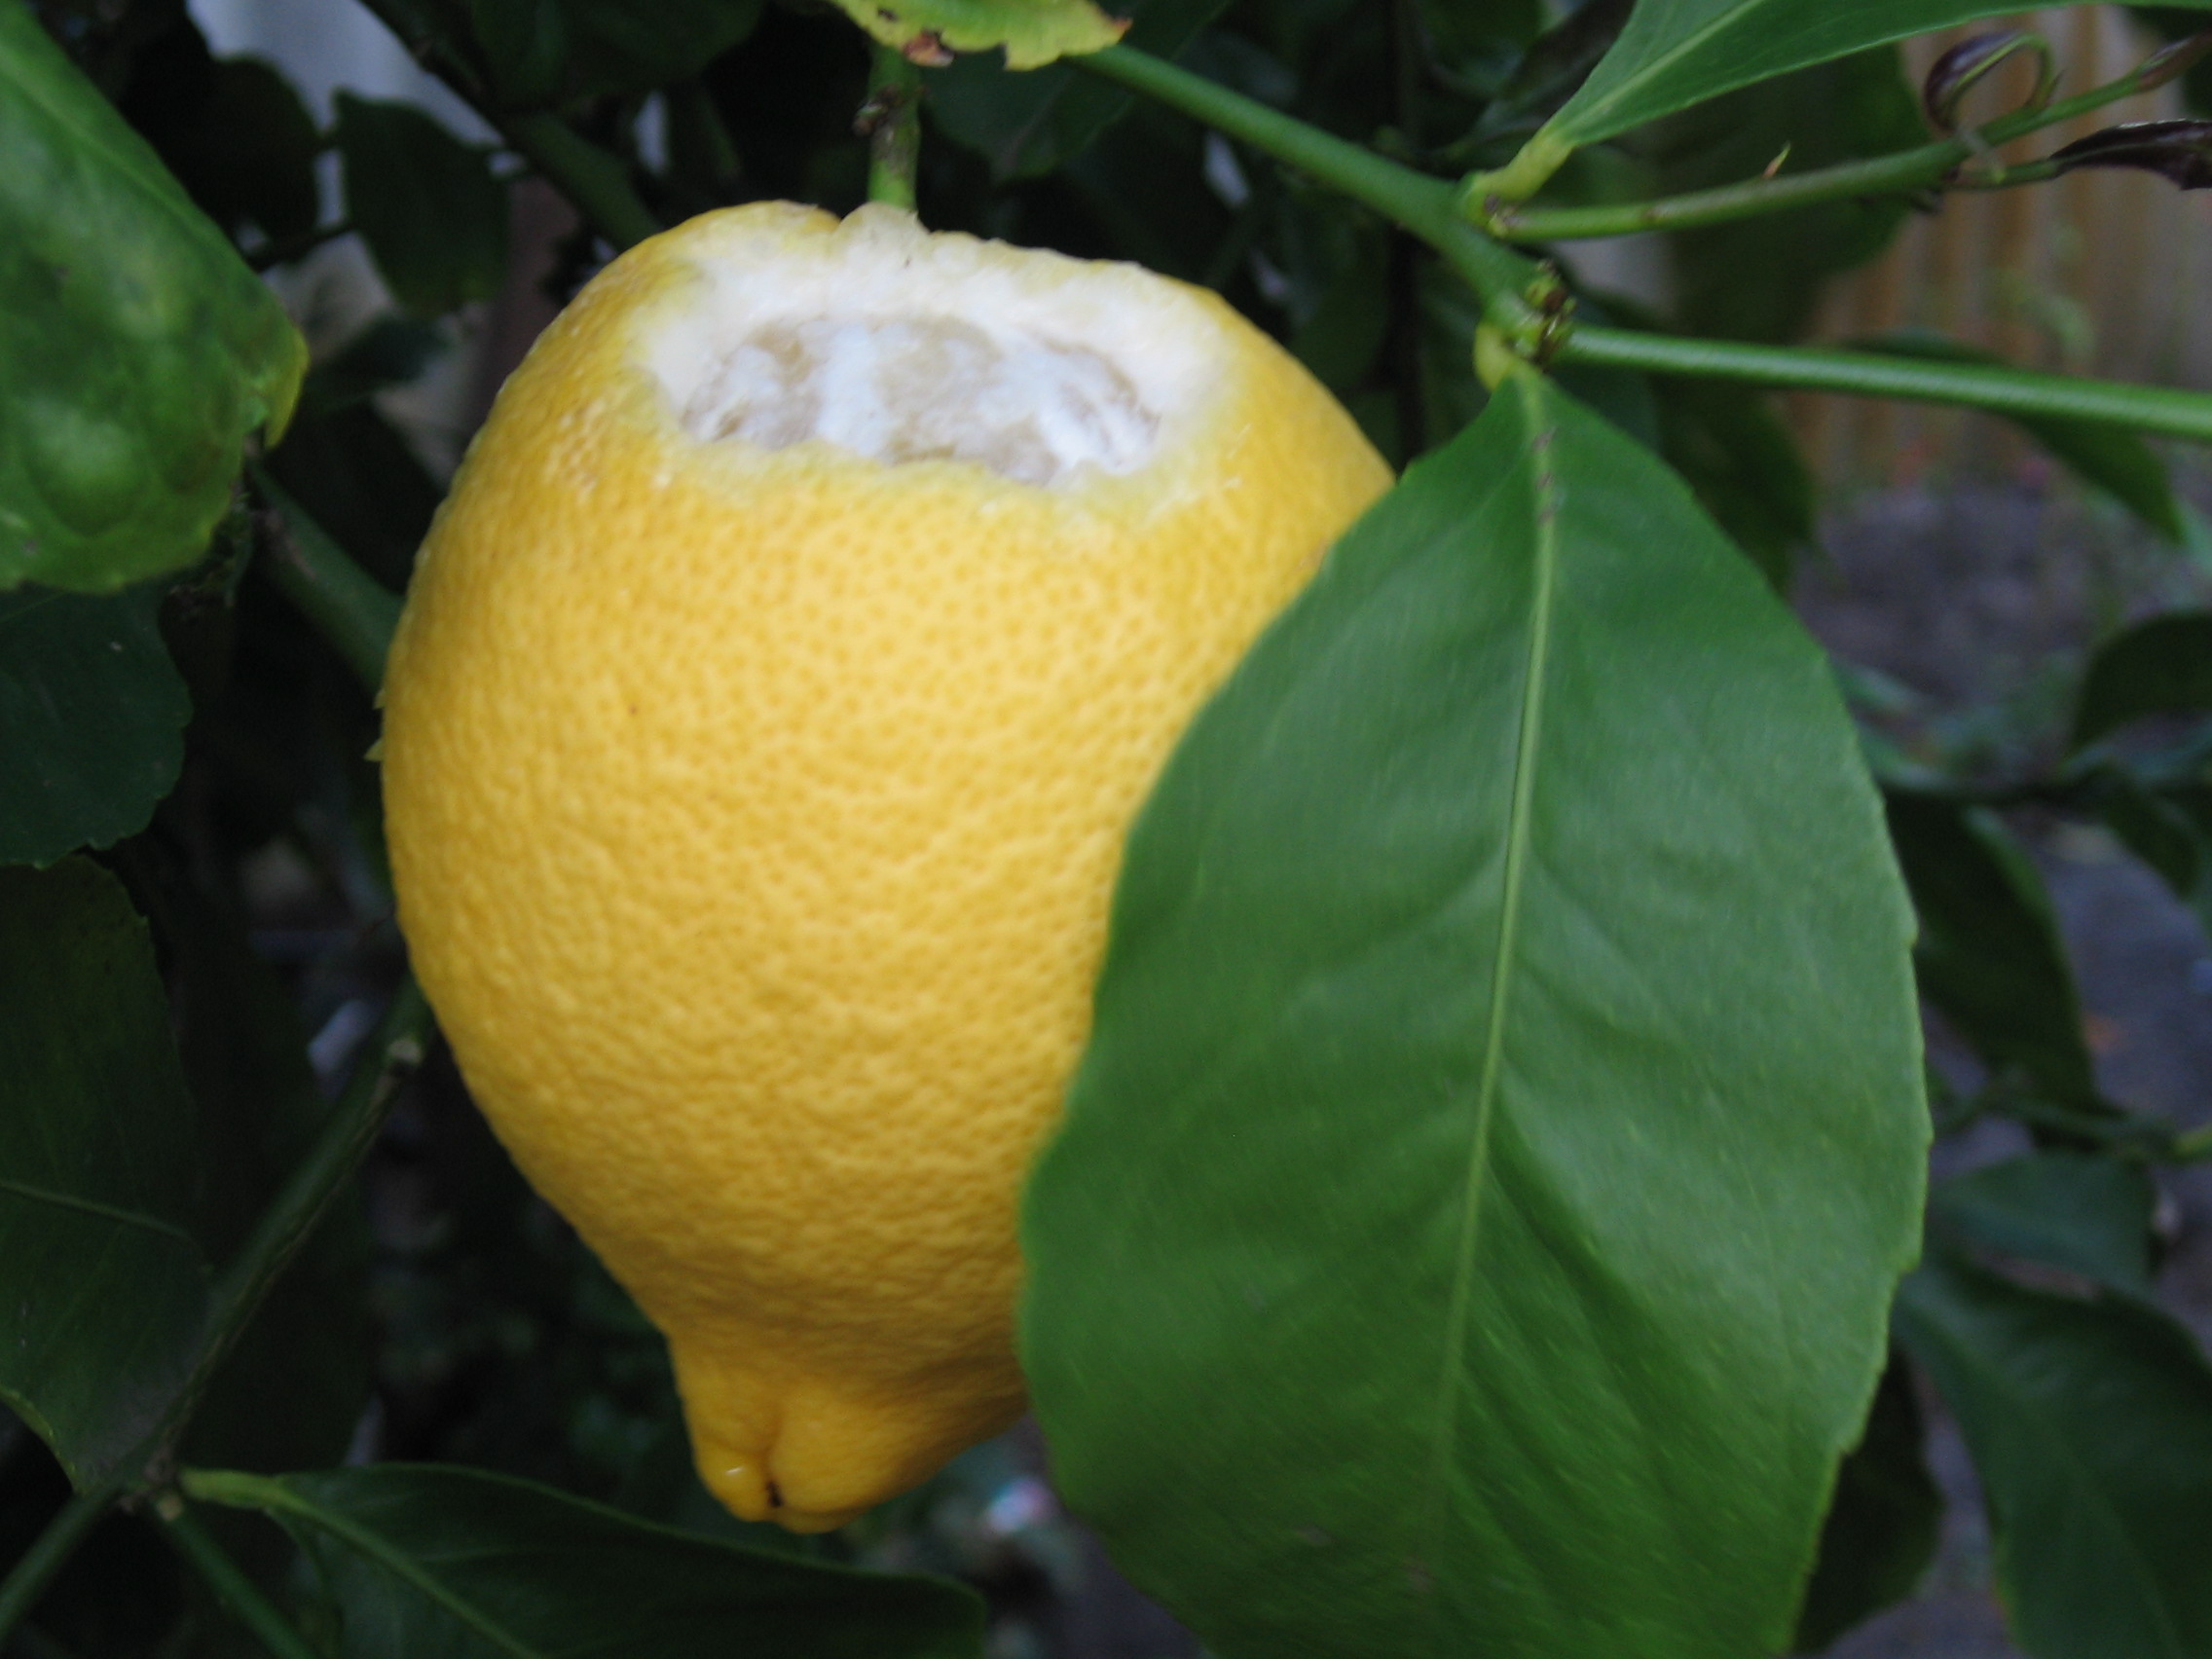 Lemon Hanging In A Tree With The Top Section Chewed Exposing Fruit